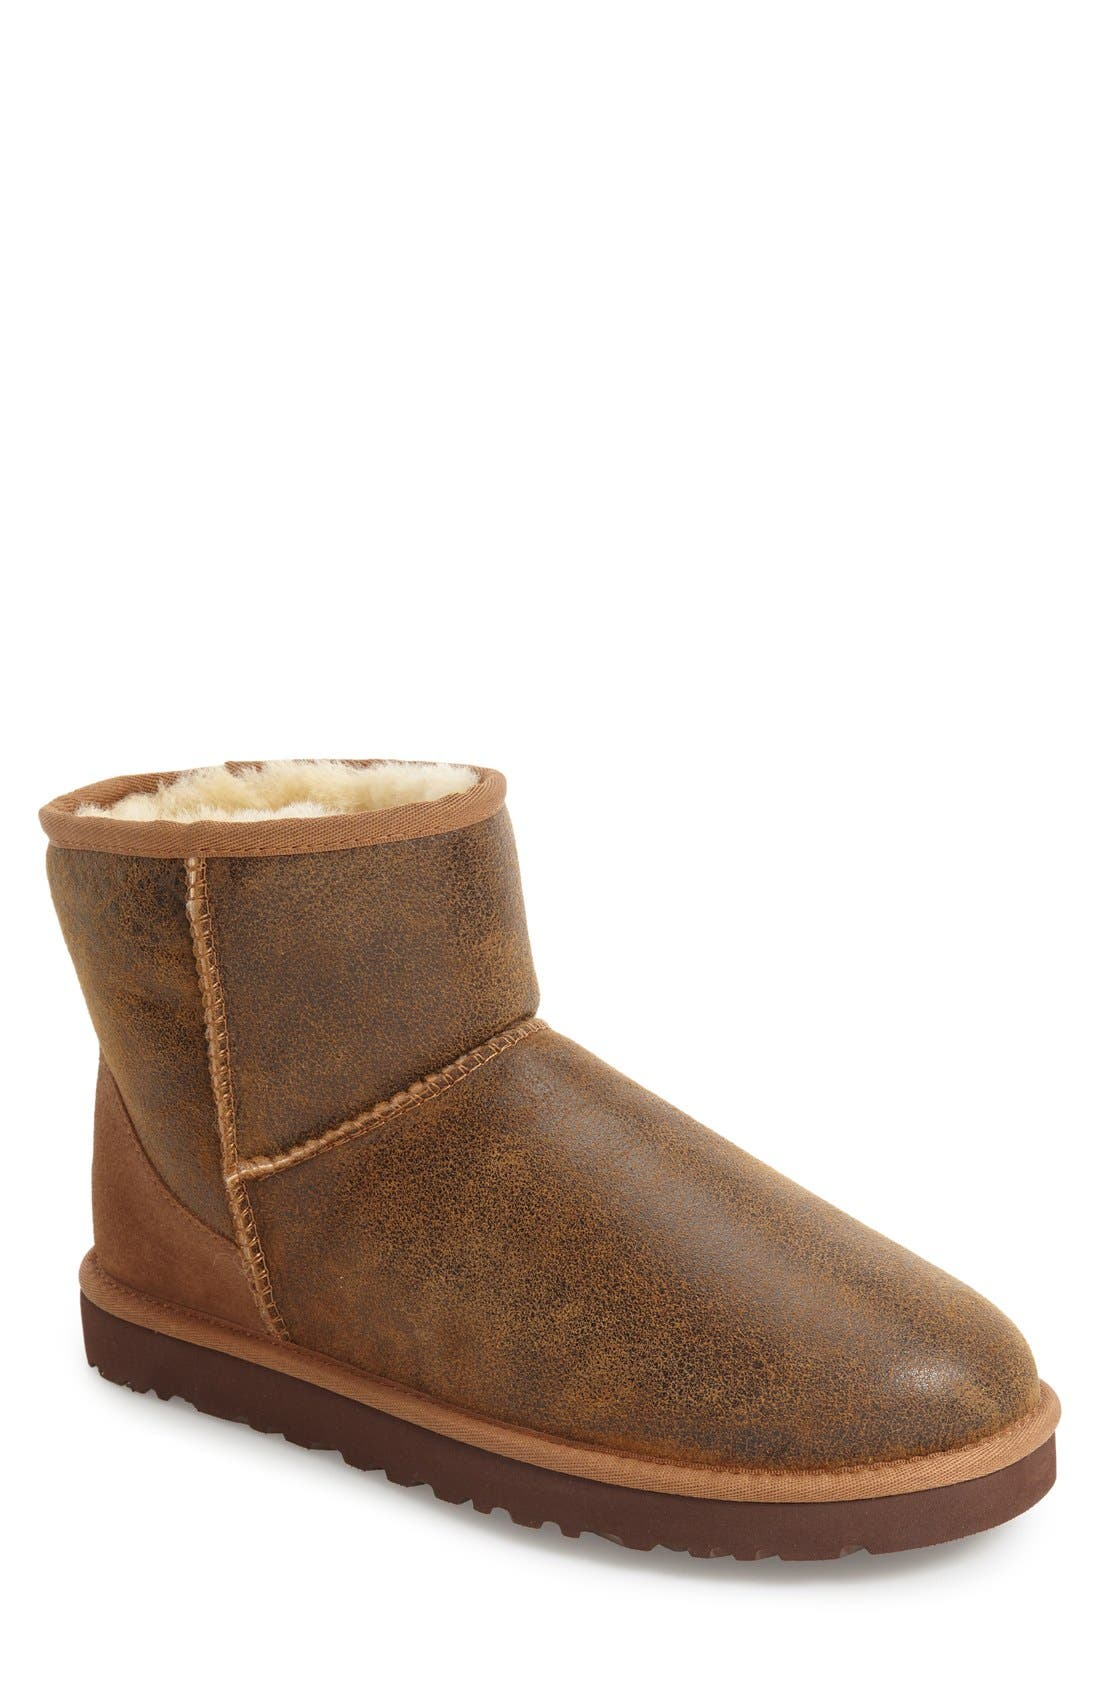 Ugg Classic Mini Bomber Boot With Genuine Shearling Or Uggpure(TM) Lining, 8- Brown